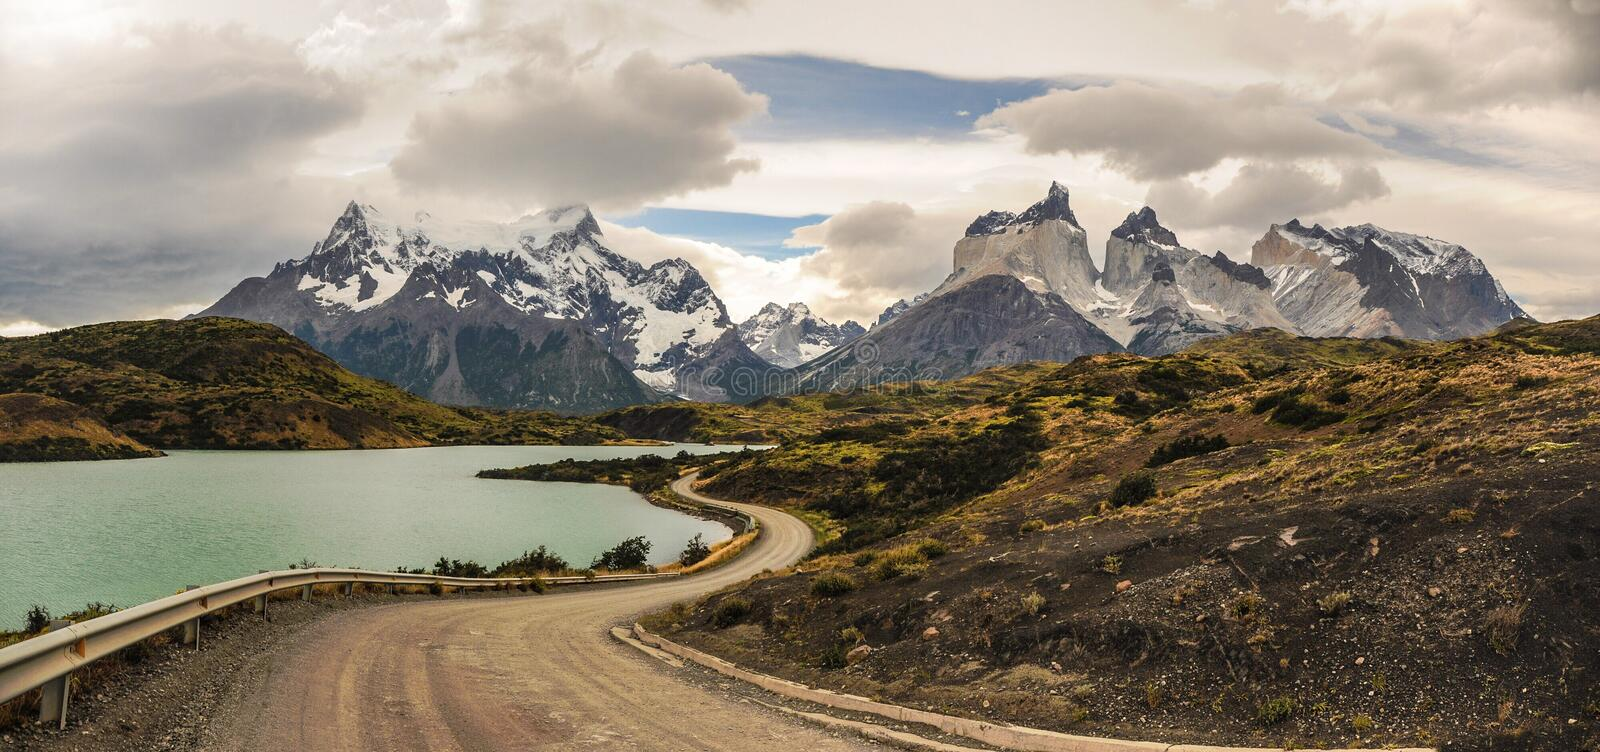 Dirt road leading around the lake to stunning Cuernos del Paine in Patagonia. Torres del Paine National Park, Patagonia, Chile the stock photos